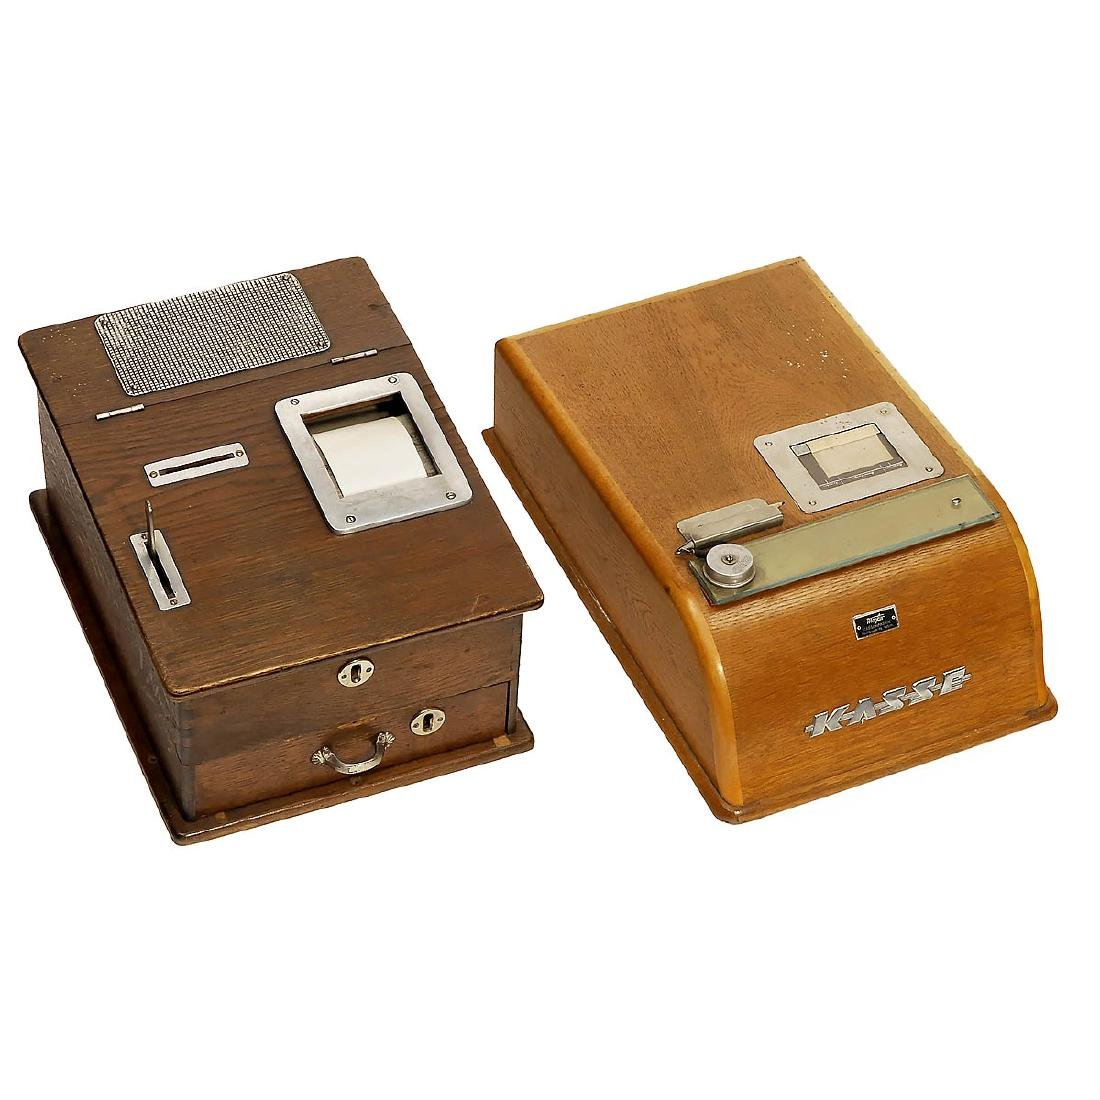 2 Cash Registers for Hand-Written Paper Strips, c. 1930